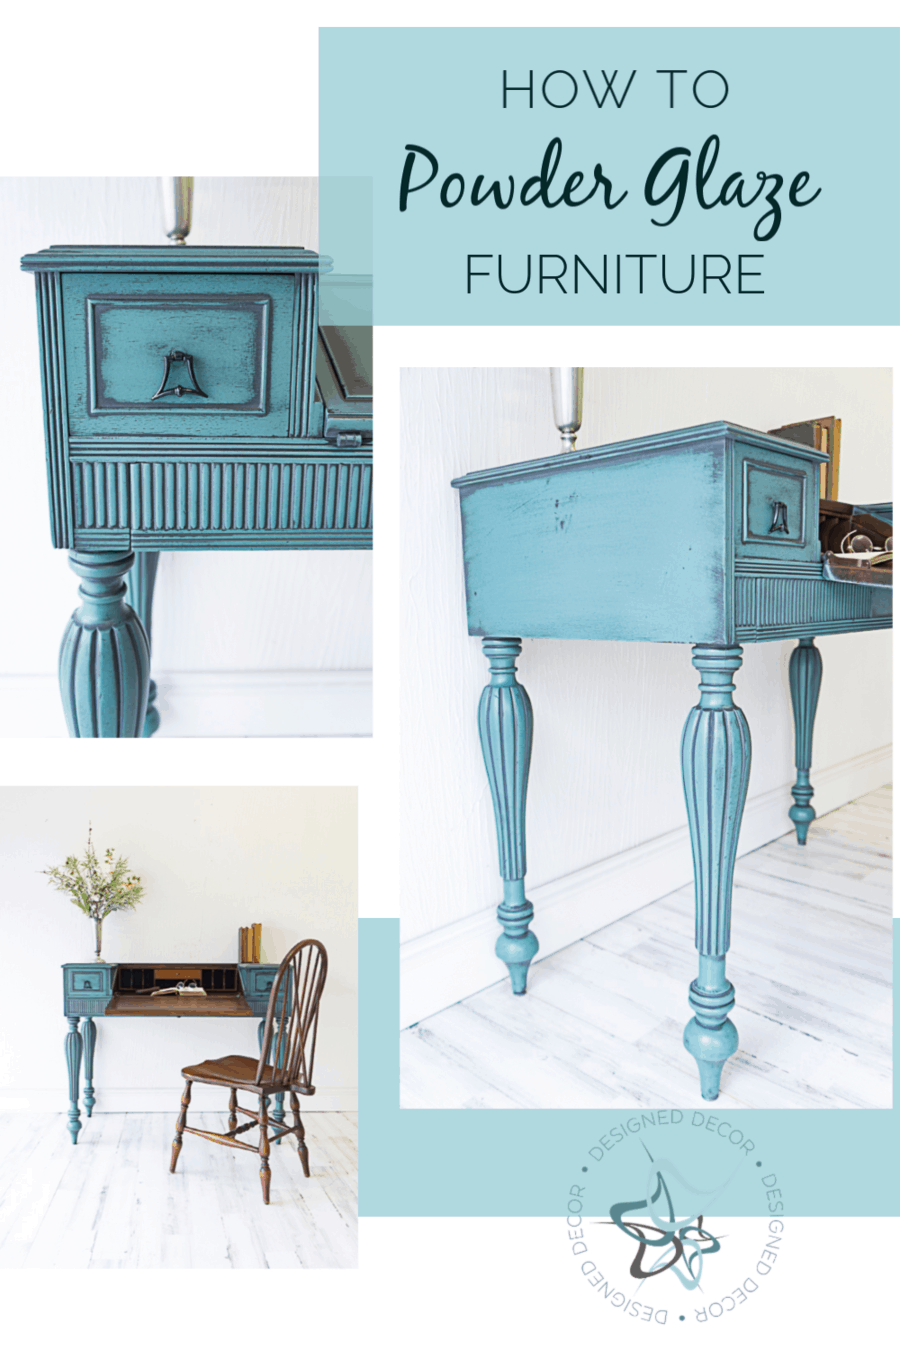 Powder Glazing adds dimension and beauty to furniture or cabinets without the frustrations of wiping the wet glaze off the carving details or insets. #chalkpaintedfurniture #paintedfurniture #onlinepaintworkshops #diytutorials #furnituremakeover #furniturepainting #diyfurniture #paintingworkshops #furniturepaintingclasses #furniturepaintingtutorial #furnitureglazing #glazedfurniture~Master this technique with the easy step-by-step video teachings ~Use any paint color and paint brands ~Bonus ...